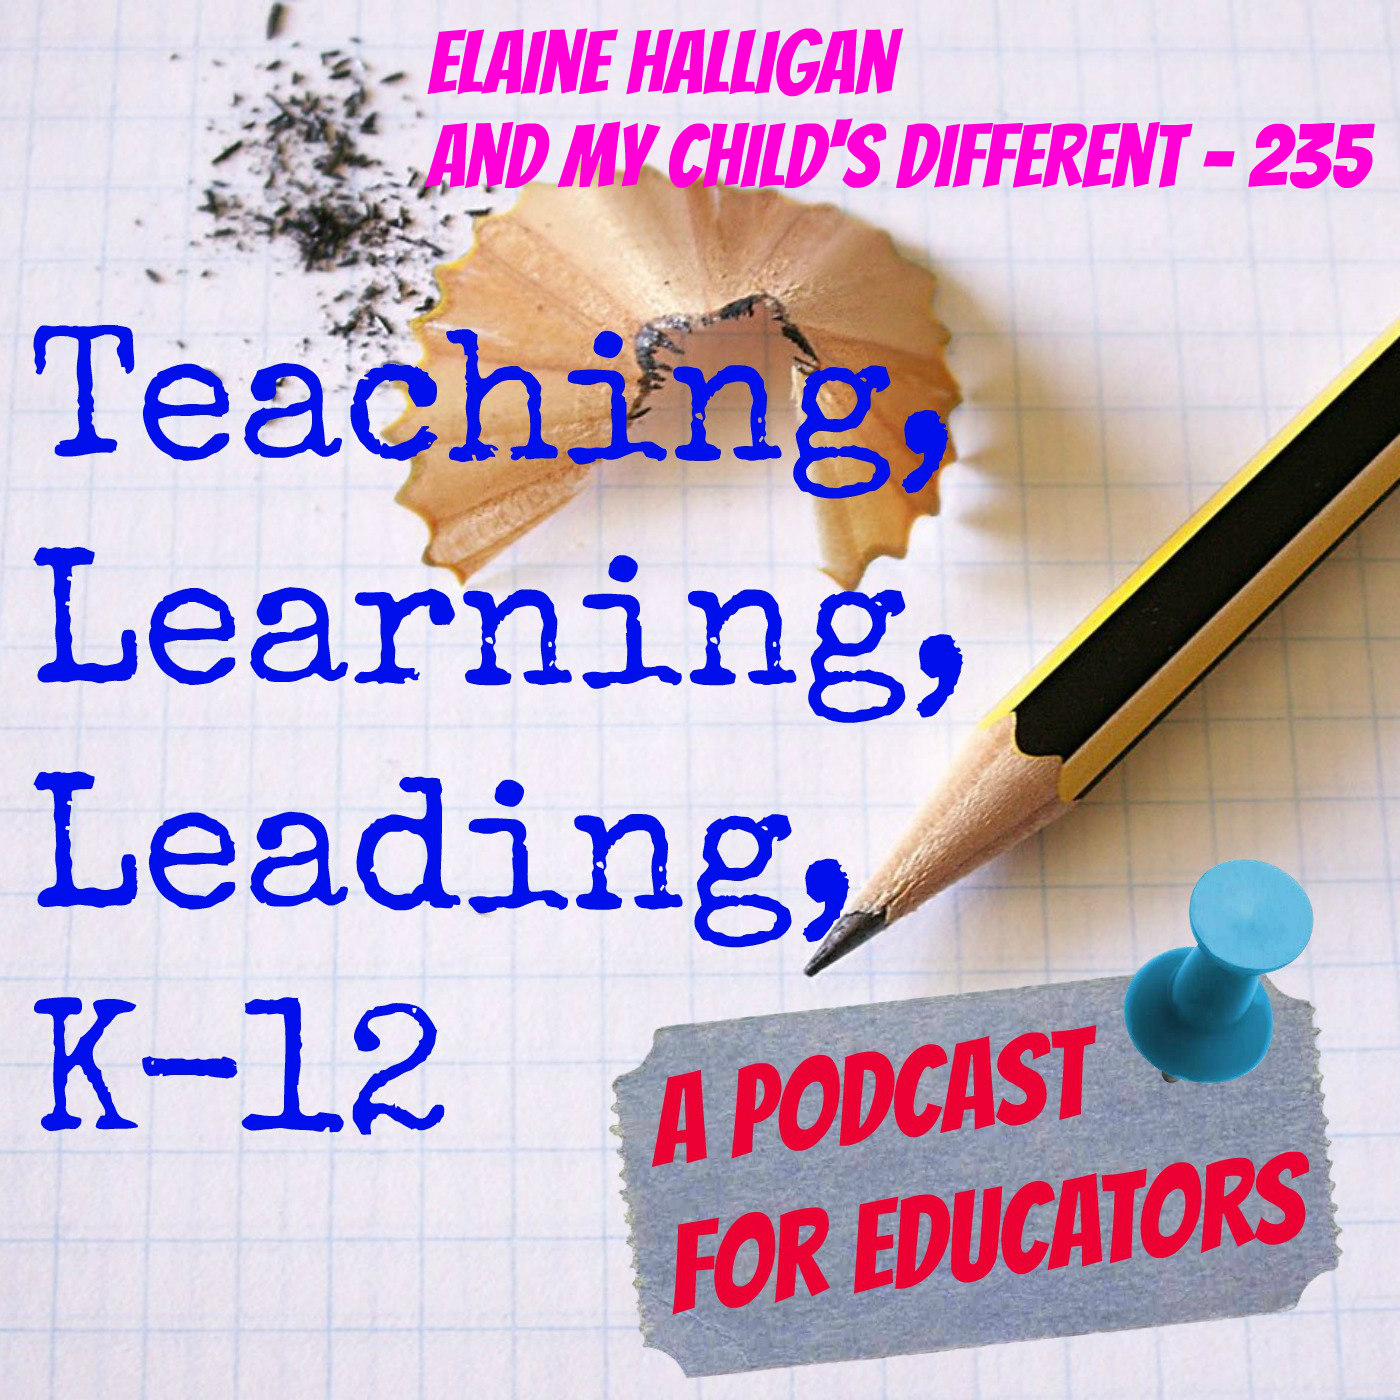 Elaine Halligan and My Child's Different - 235